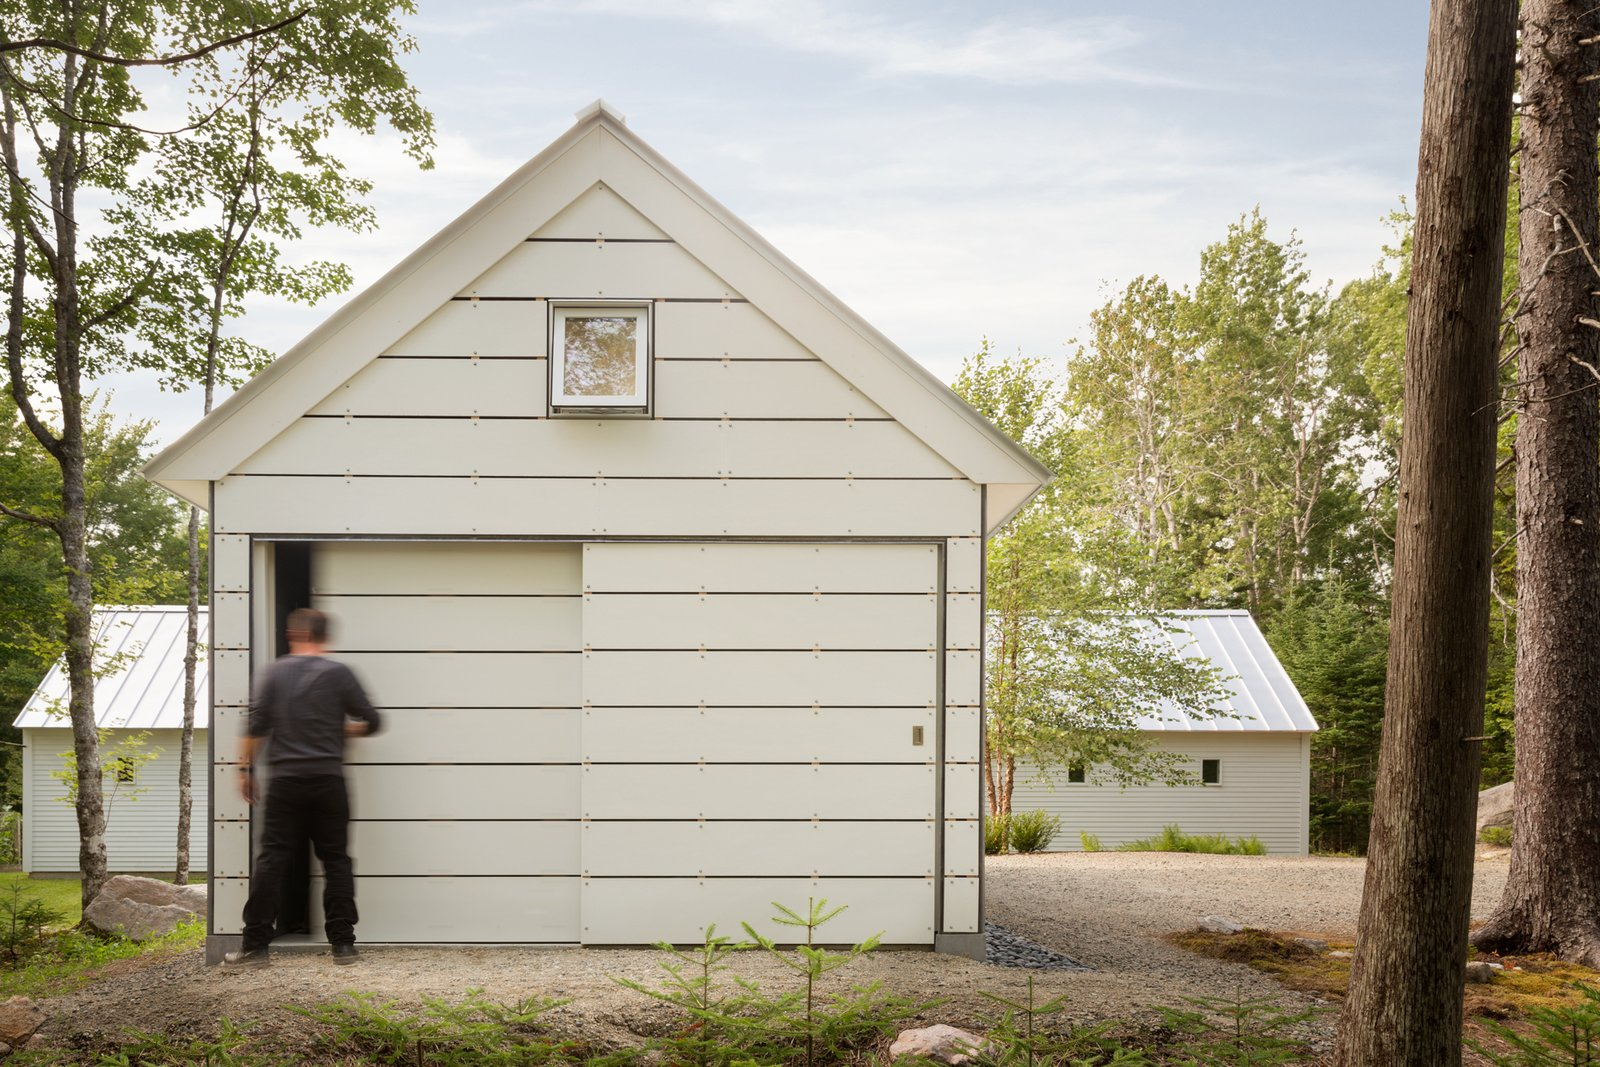 Outdoor, Side Yard, Walkways, and Trees Barn Storage  The Long Studio by 30X40 Design Workshop